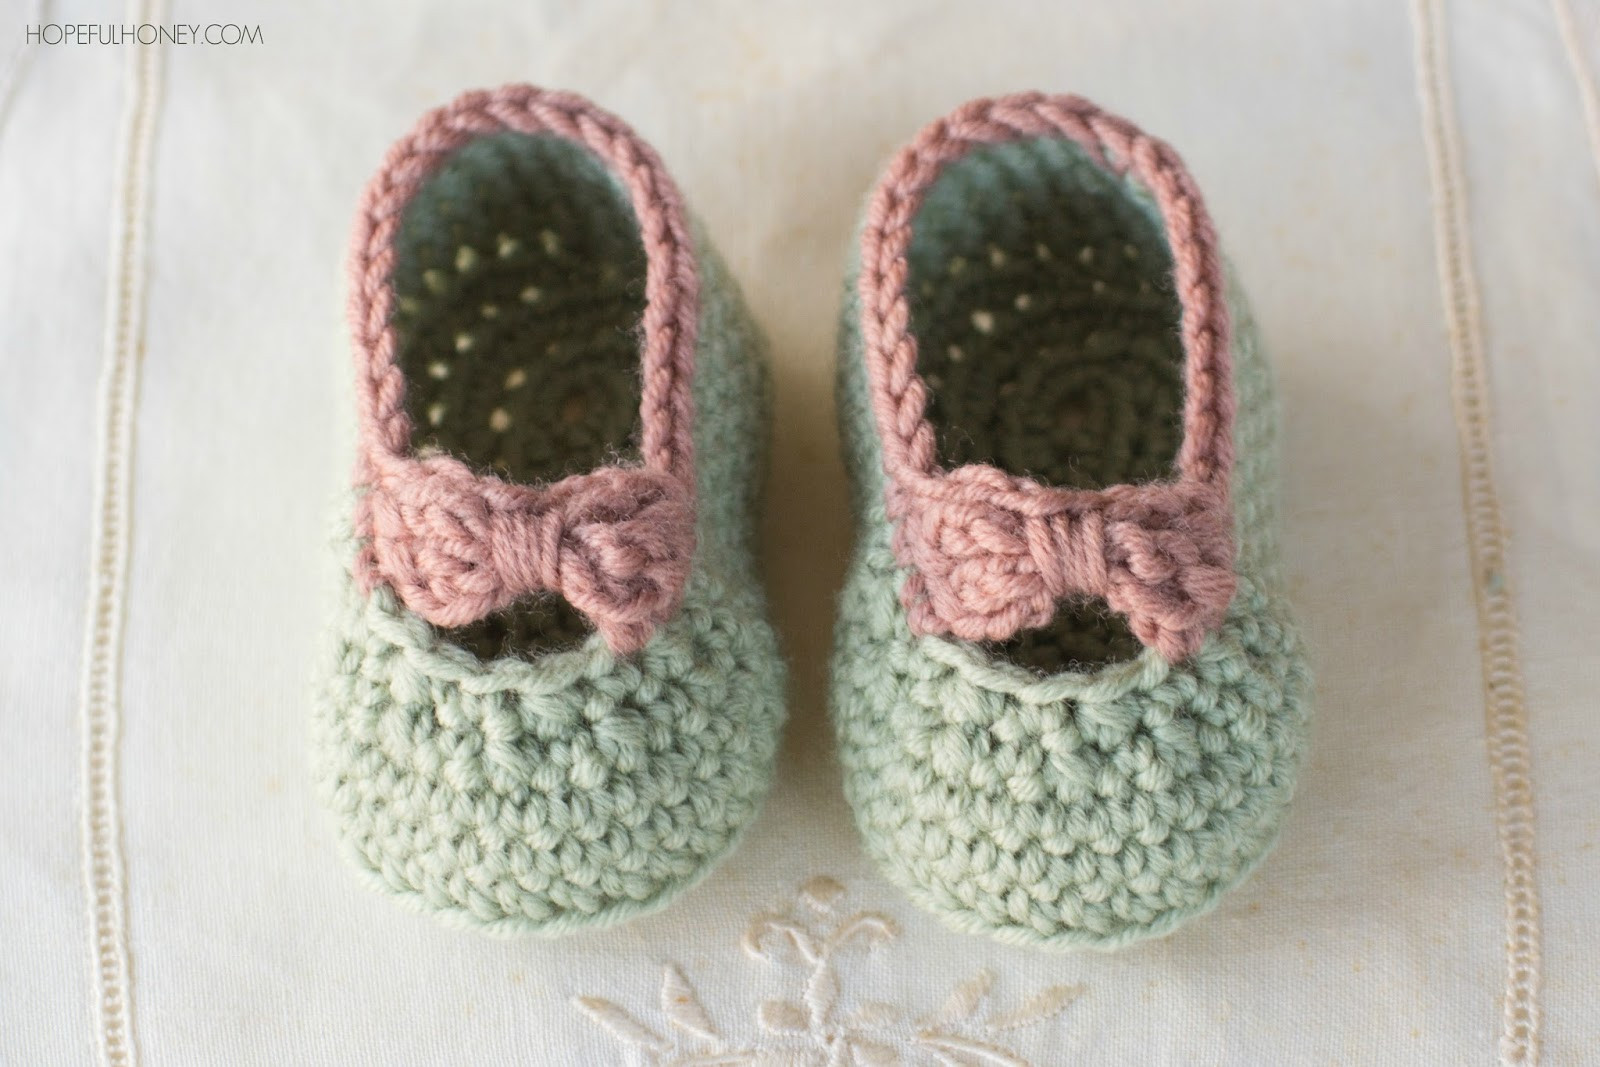 Elegant Get Better Than Best Baby Booties Crochet Pattern Free Crochet Patterns for toddlers Of Brilliant 47 Photos Free Crochet Patterns for toddlers